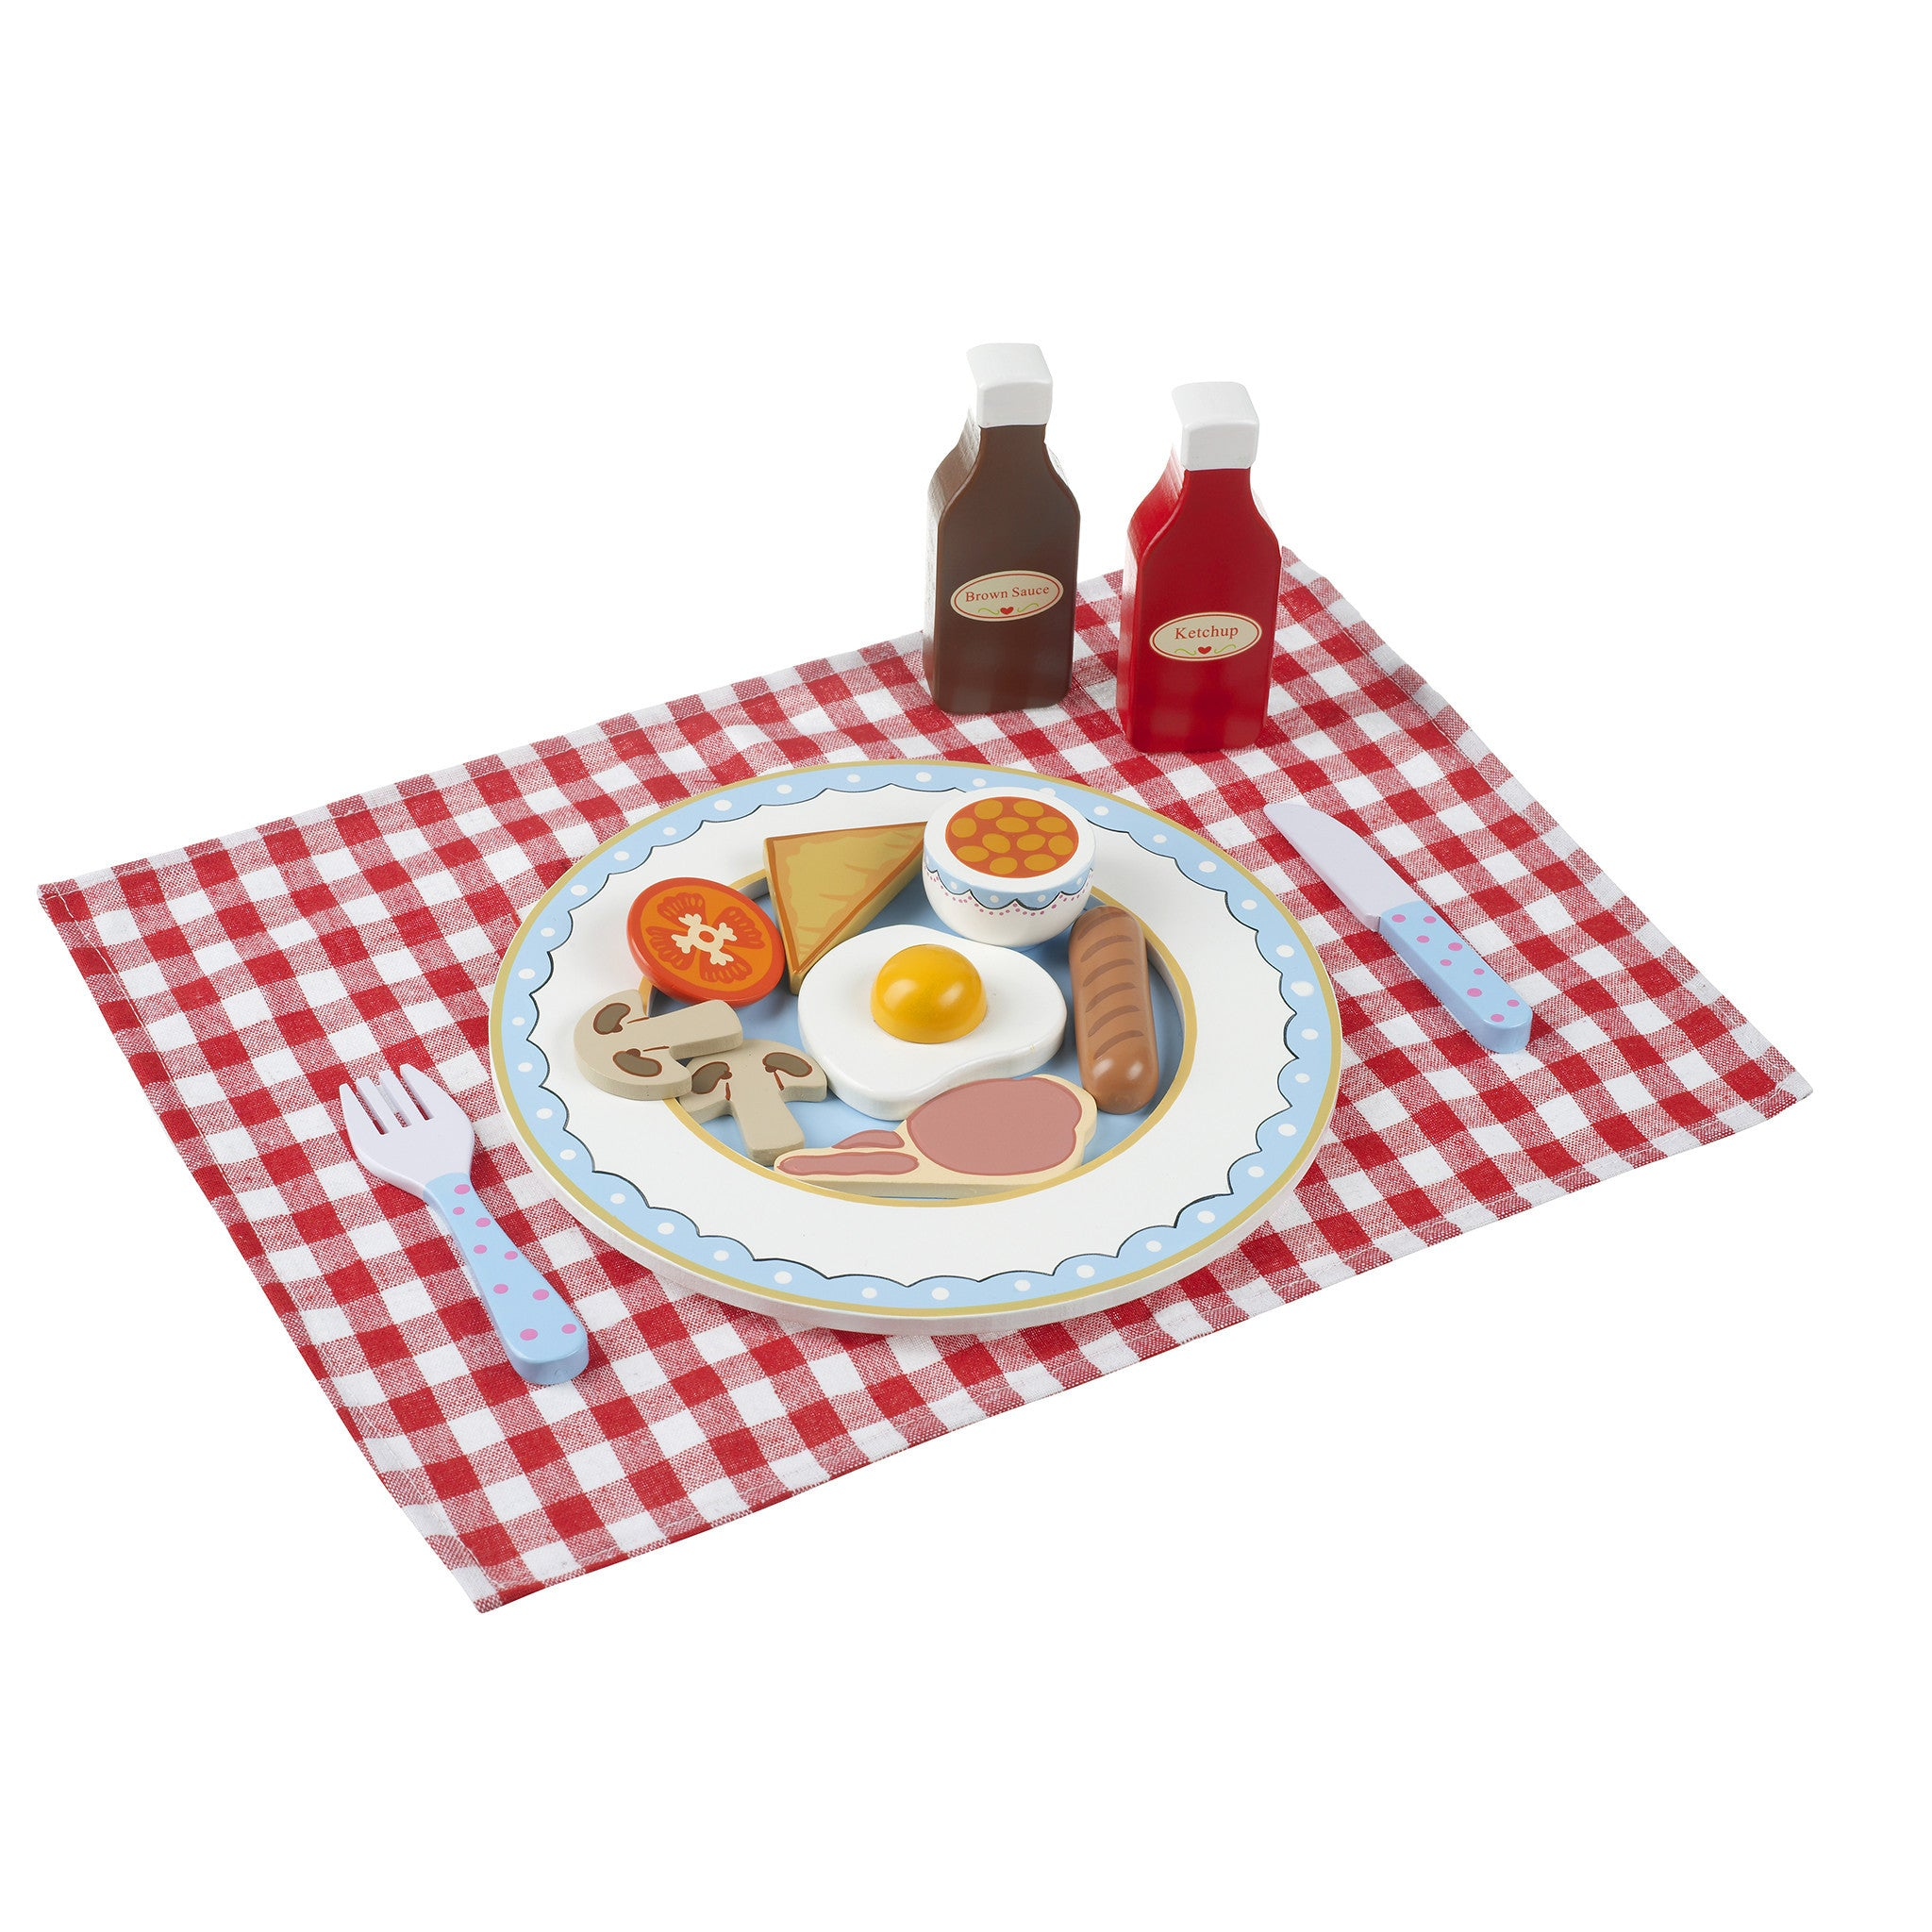 English Breakfast Set - Wooden Play Food